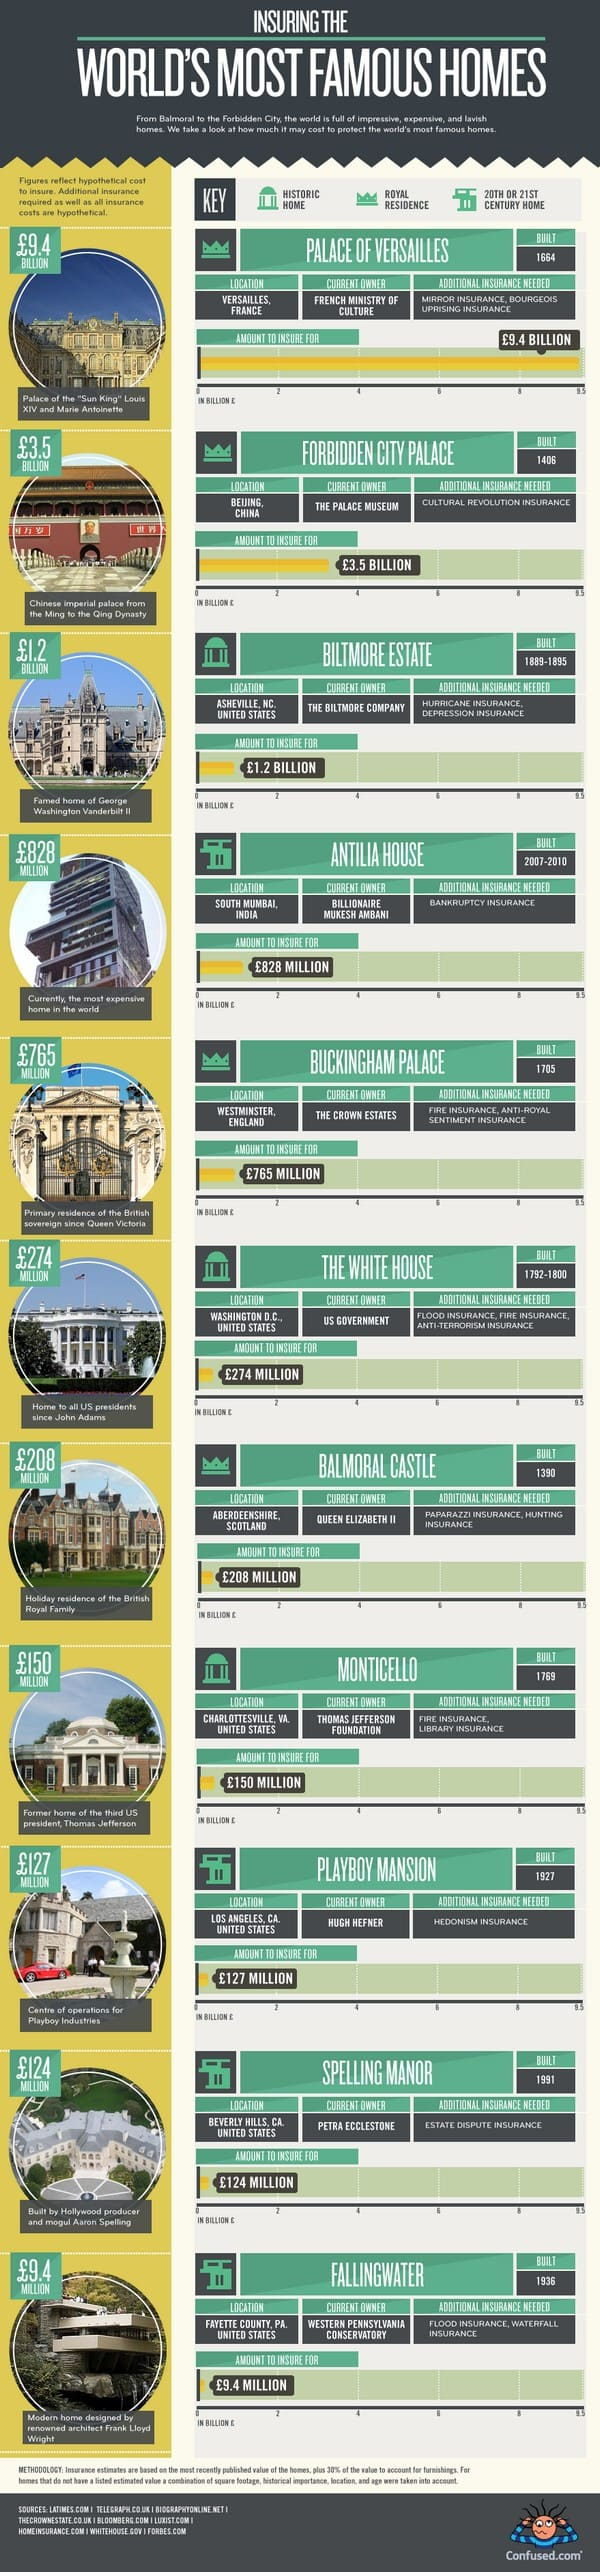 worlds most famous homes infographic